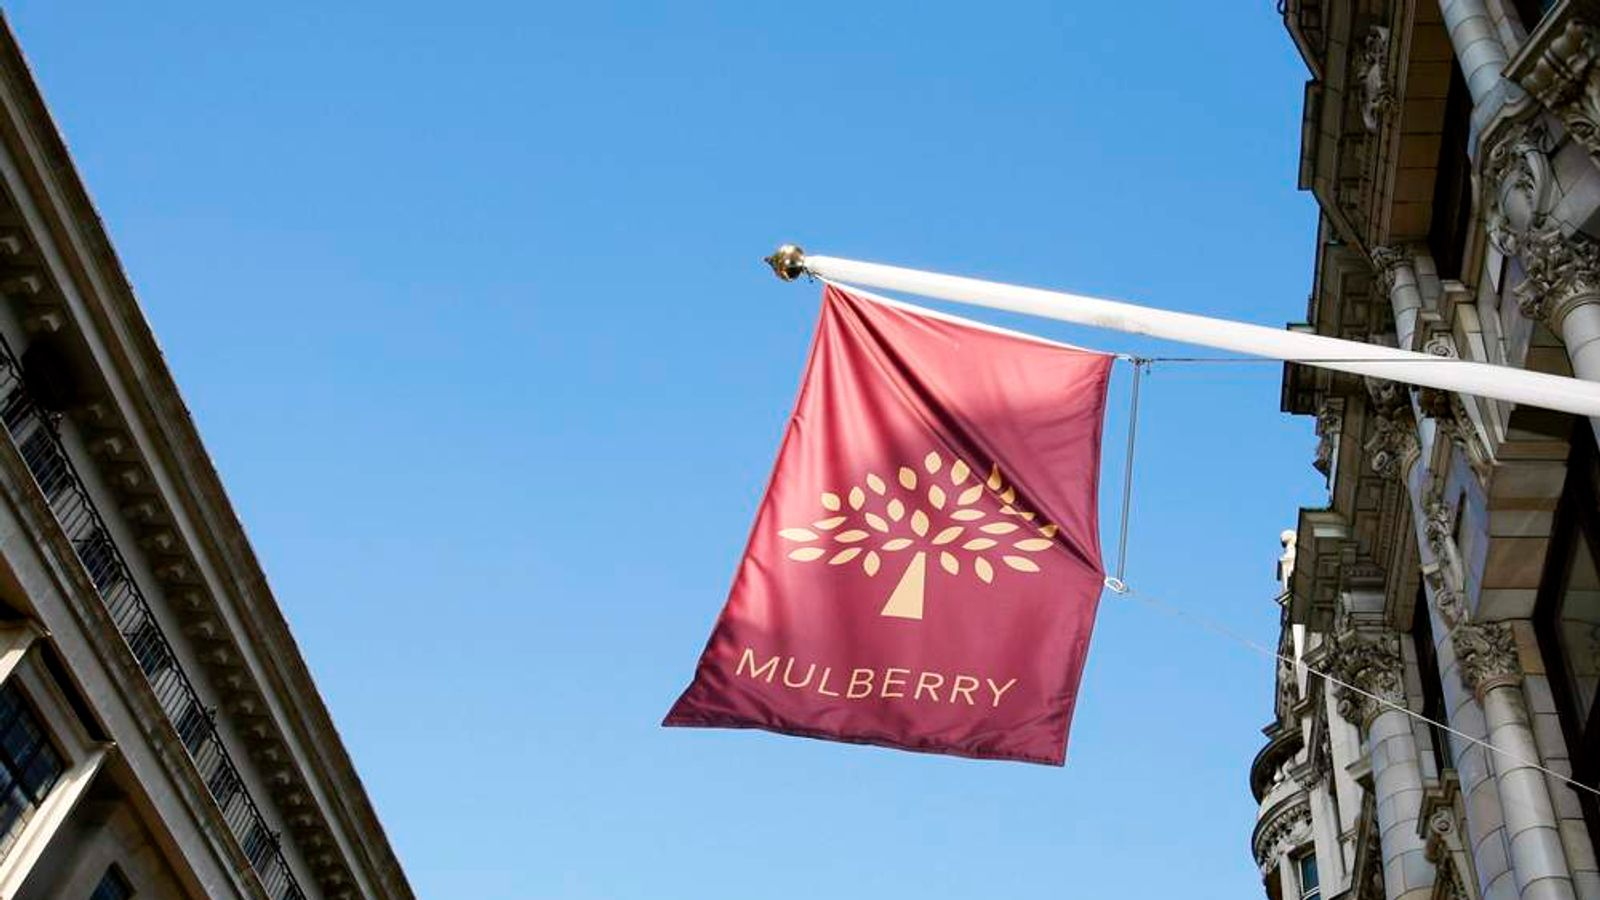 A flag flies above fashion retailer Mulberry's store on New Bond Street in London